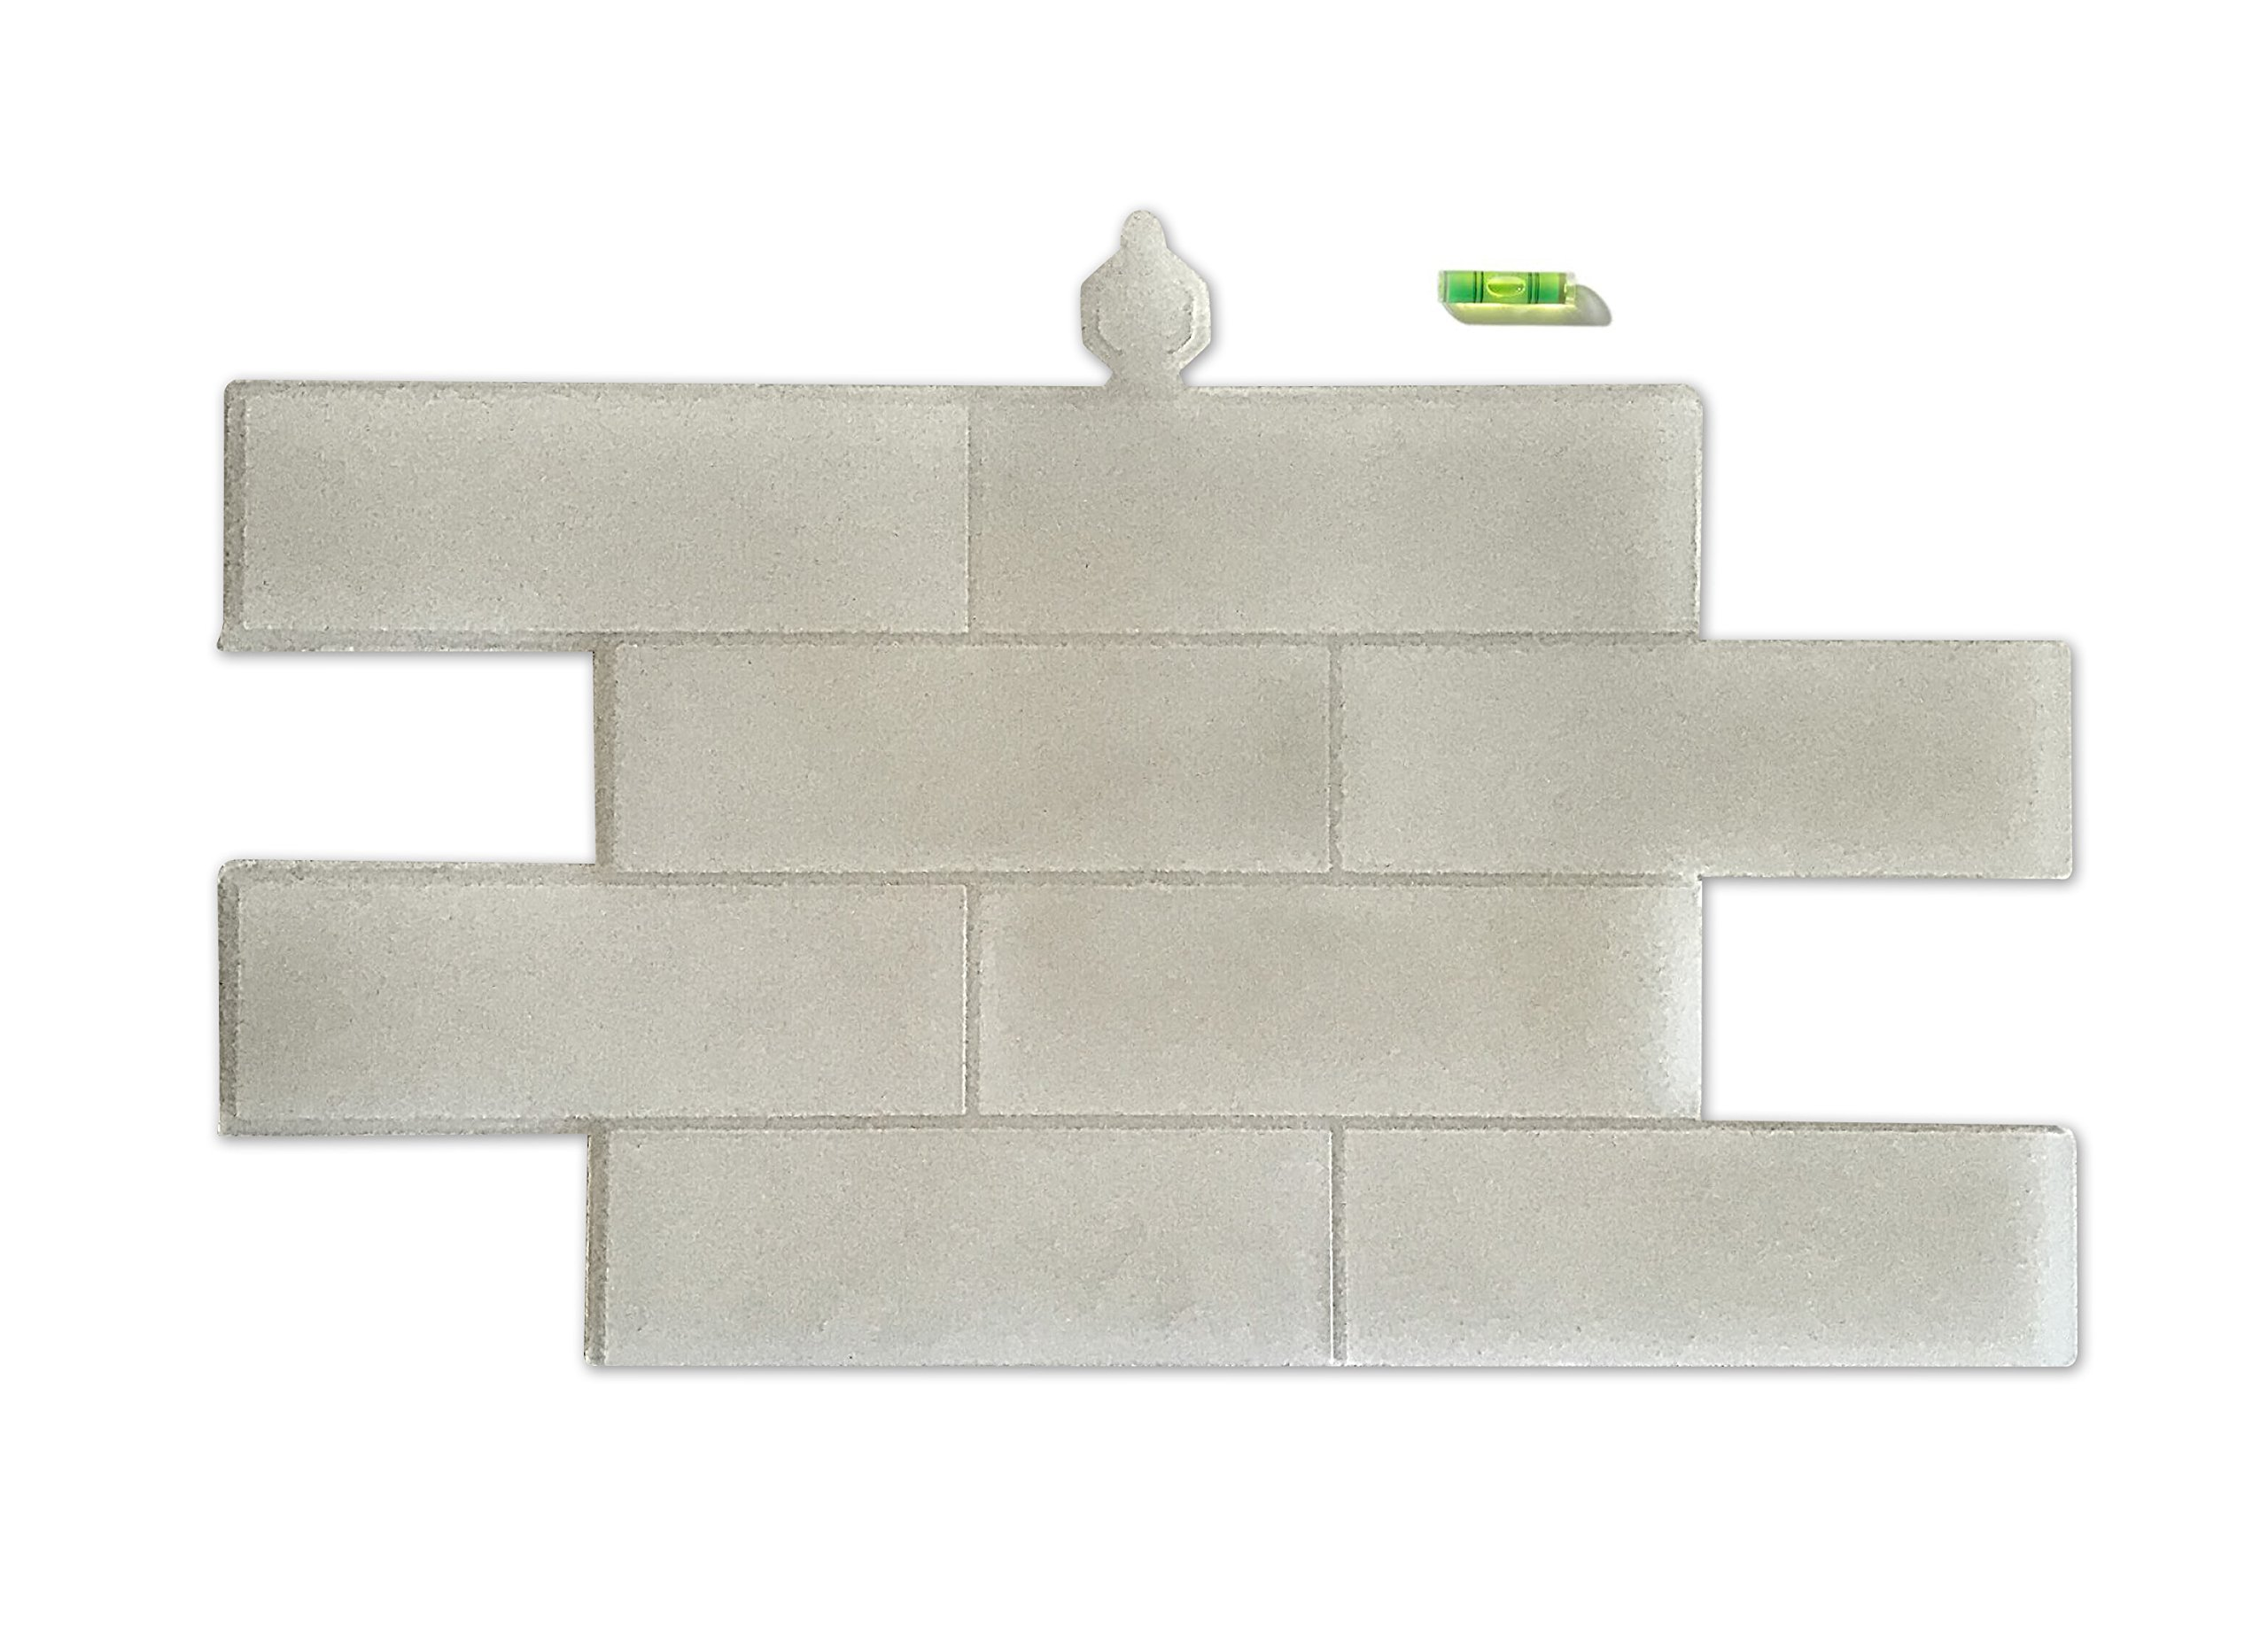 The Original Wall Stamp Designer Painting Template | BRICK 15 x 23'' with Patented Self-Leveling System